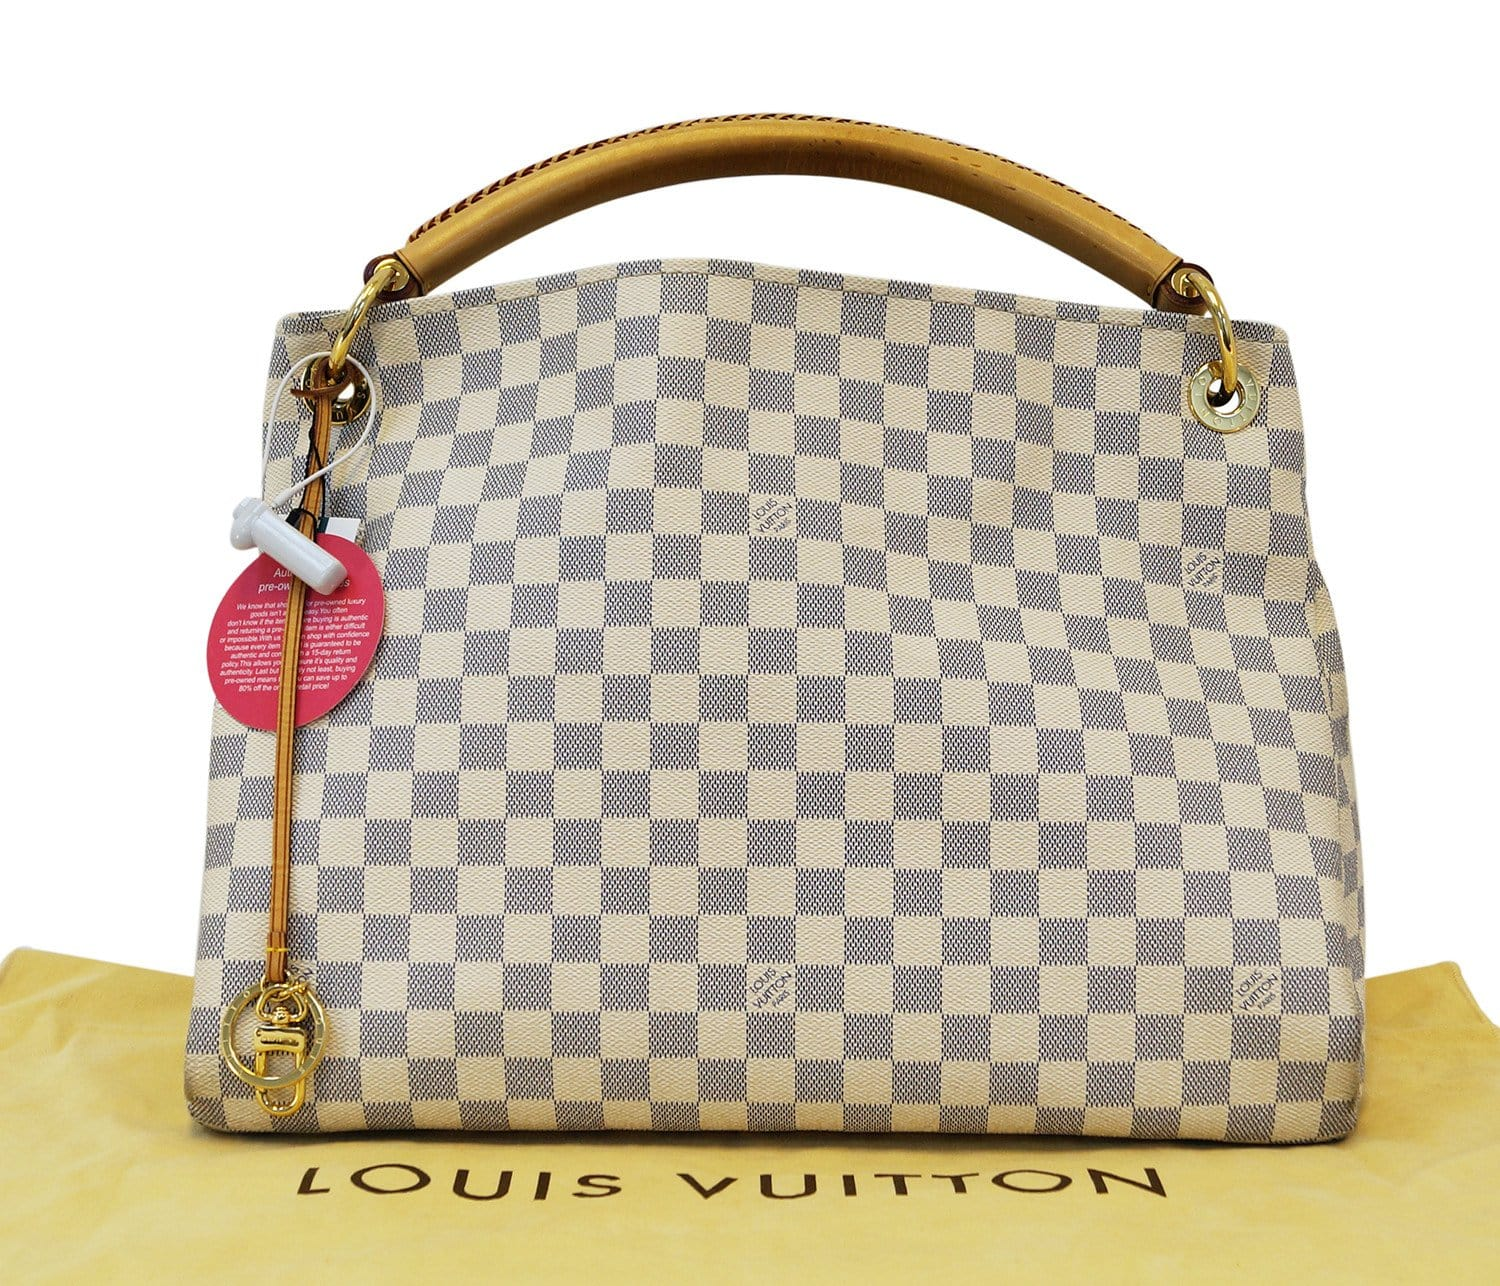 0e4e1a8d3383 LOUIS VUITTON Damier Azur Artsy MM White Shoulder Bag